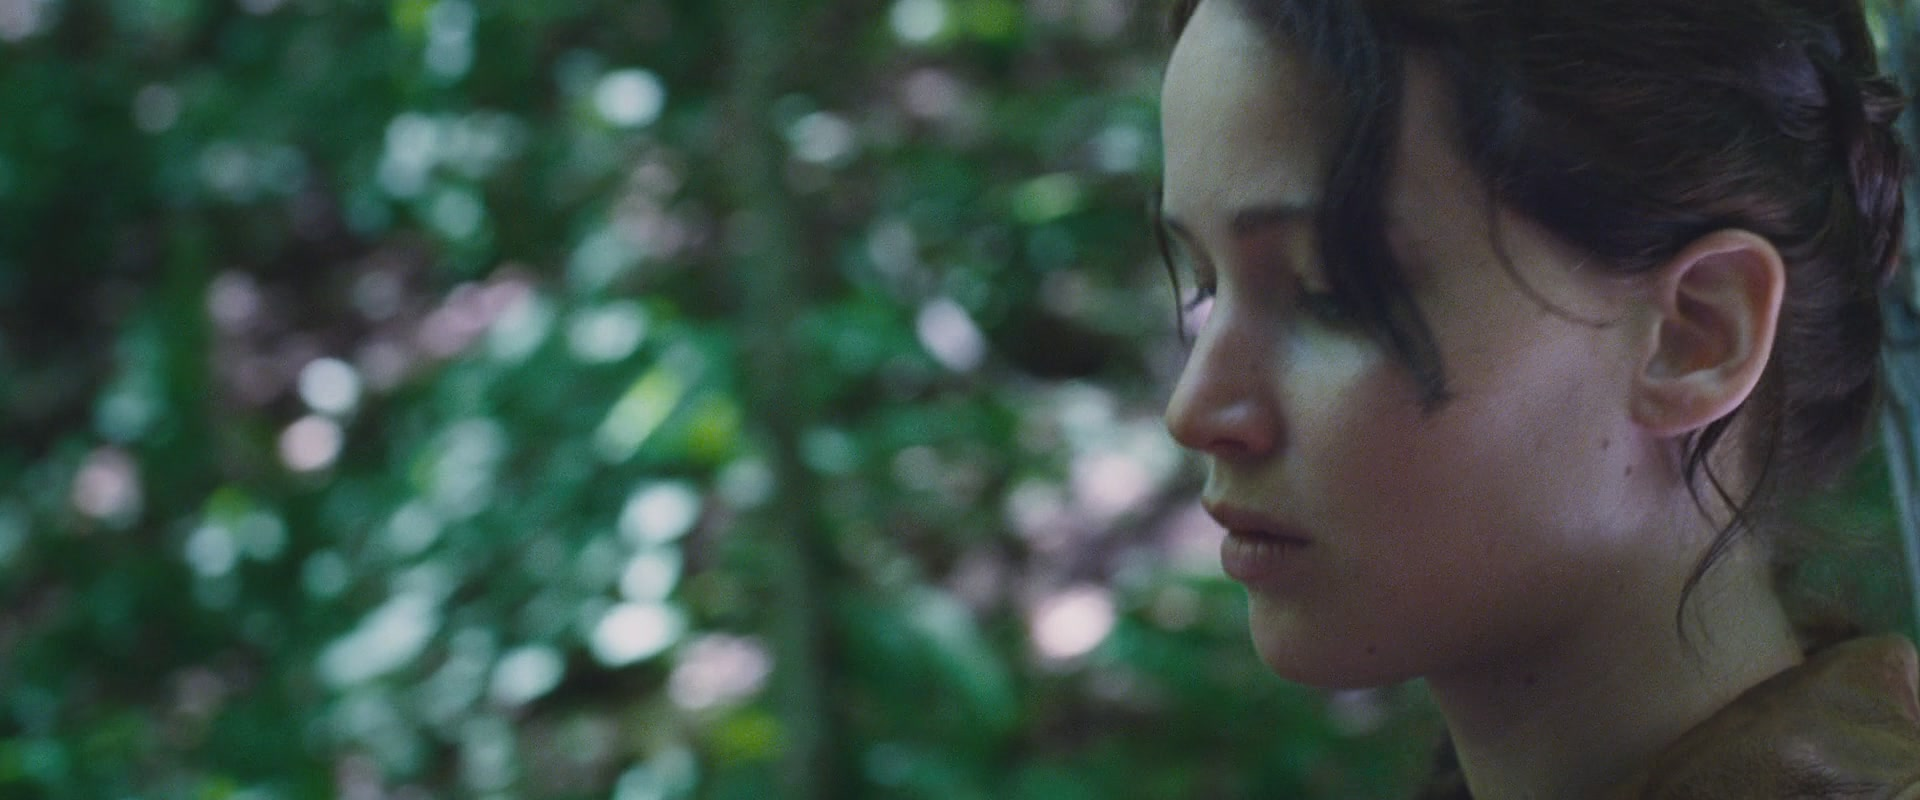 katniss everdeen analysis Why do some people think katniss everdeen is autistic how well does the  theory hold water this analysis lays out the argument and tests its.